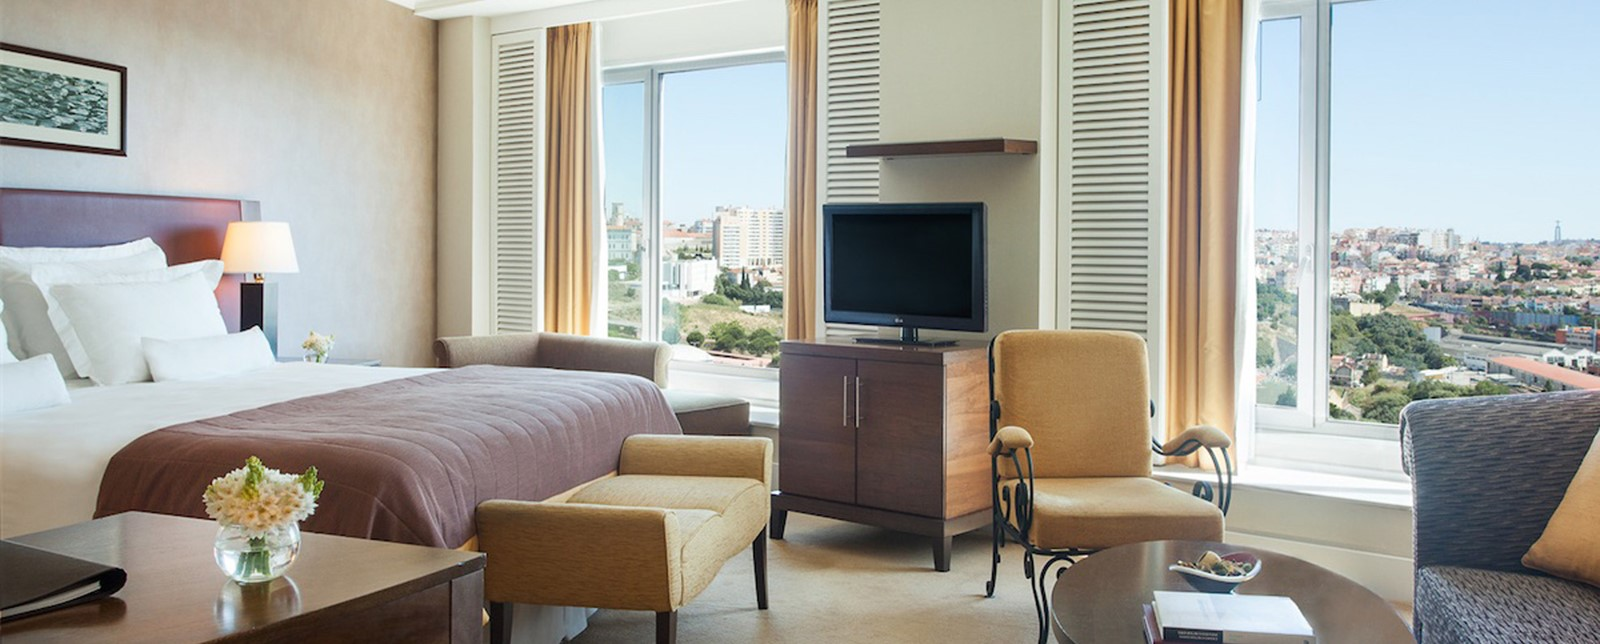 Corinthia Lisbon Executive Junior Suite